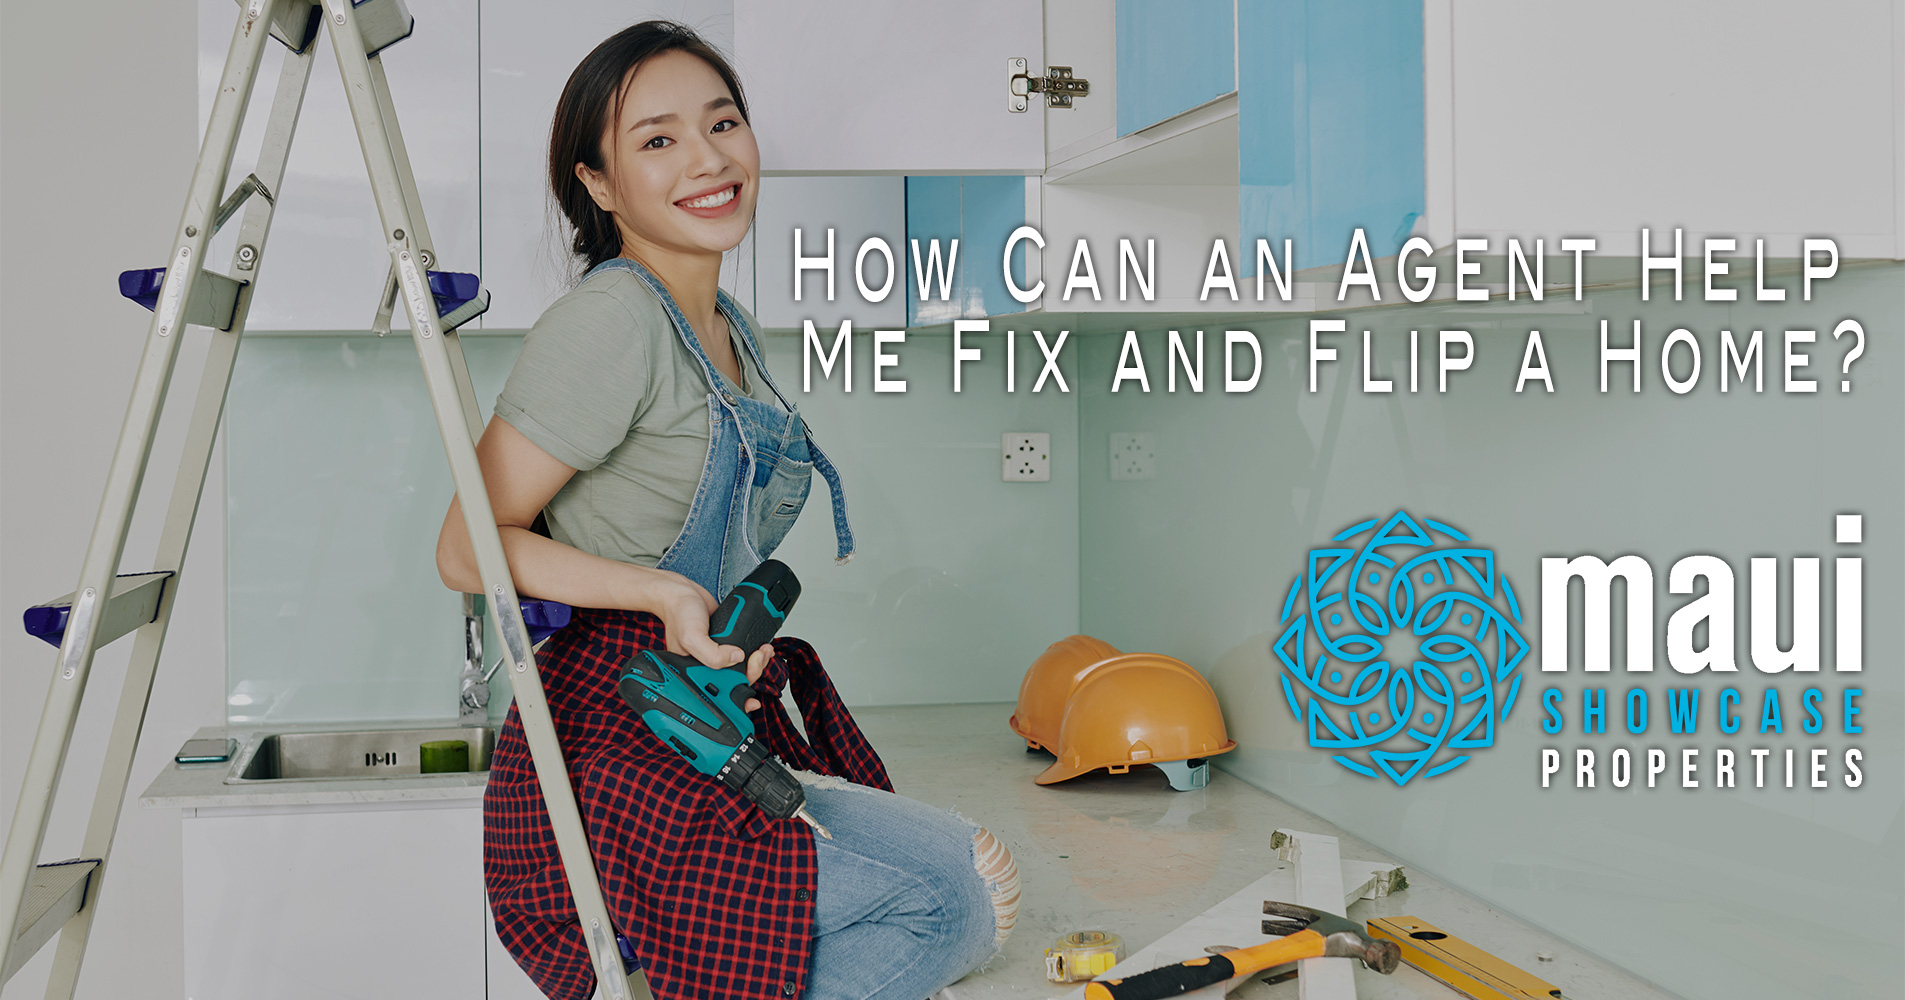 How Can an Agent Help Me Fix and Flip a Home?